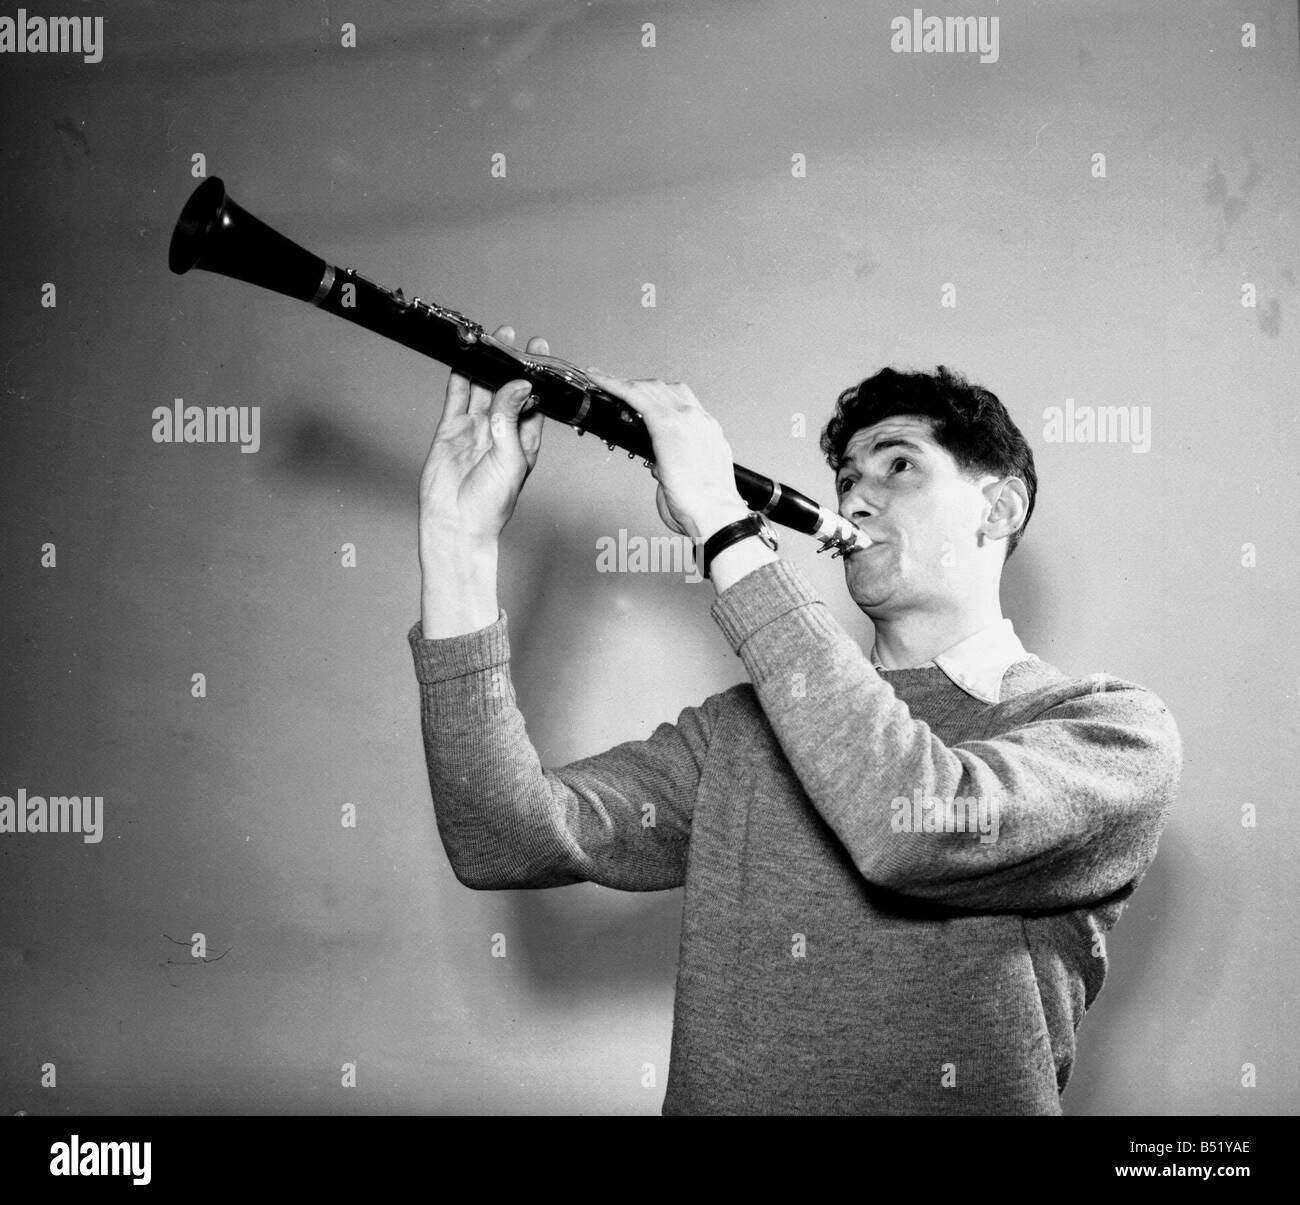 Cy Laurie January 1955 soprano sax player - Stock Image